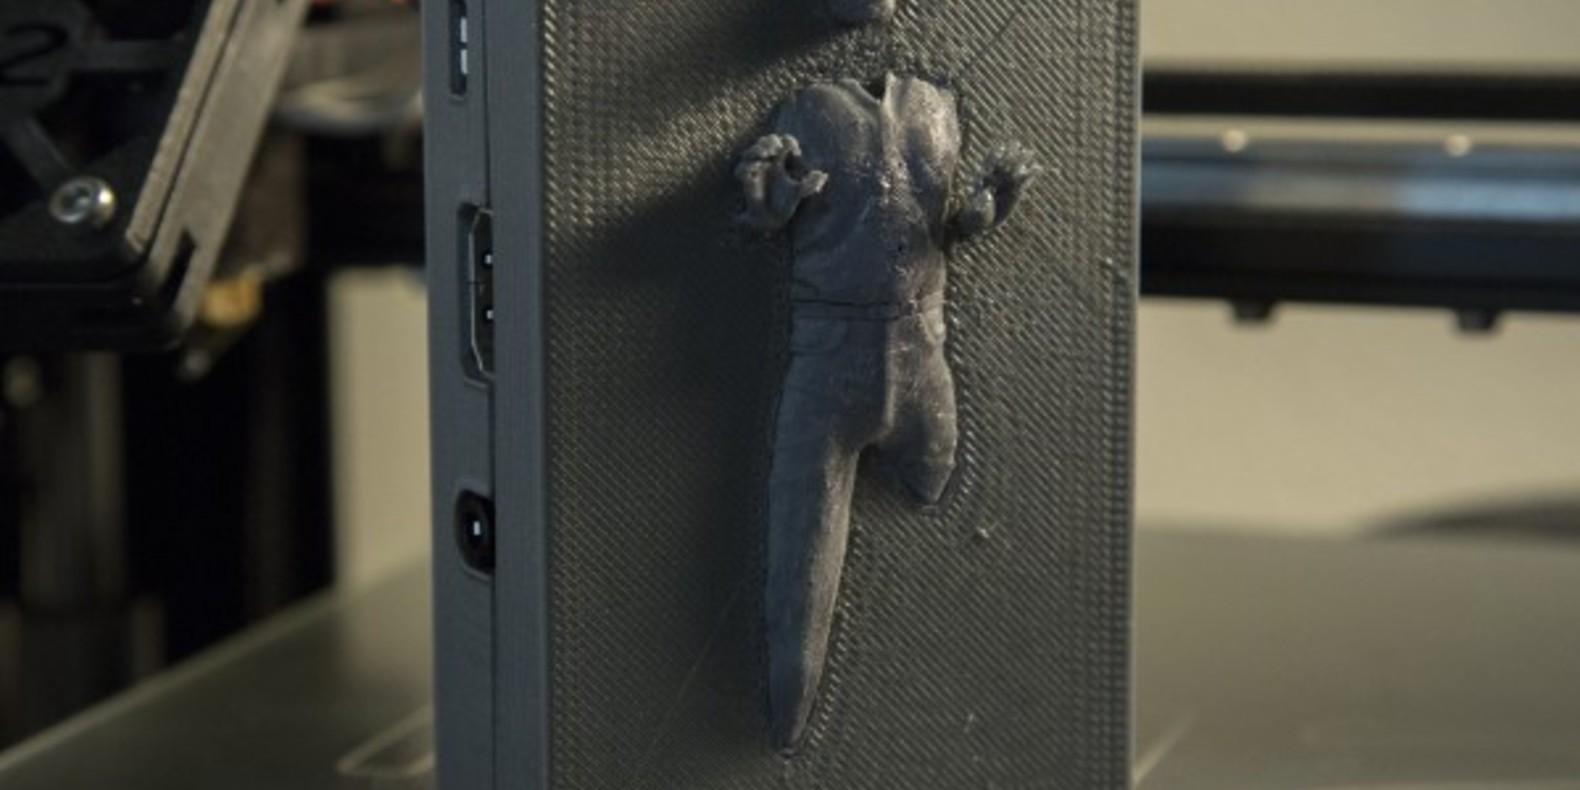 Han Solo in Carbonite on this case for Raspberry Pie 2 / B +